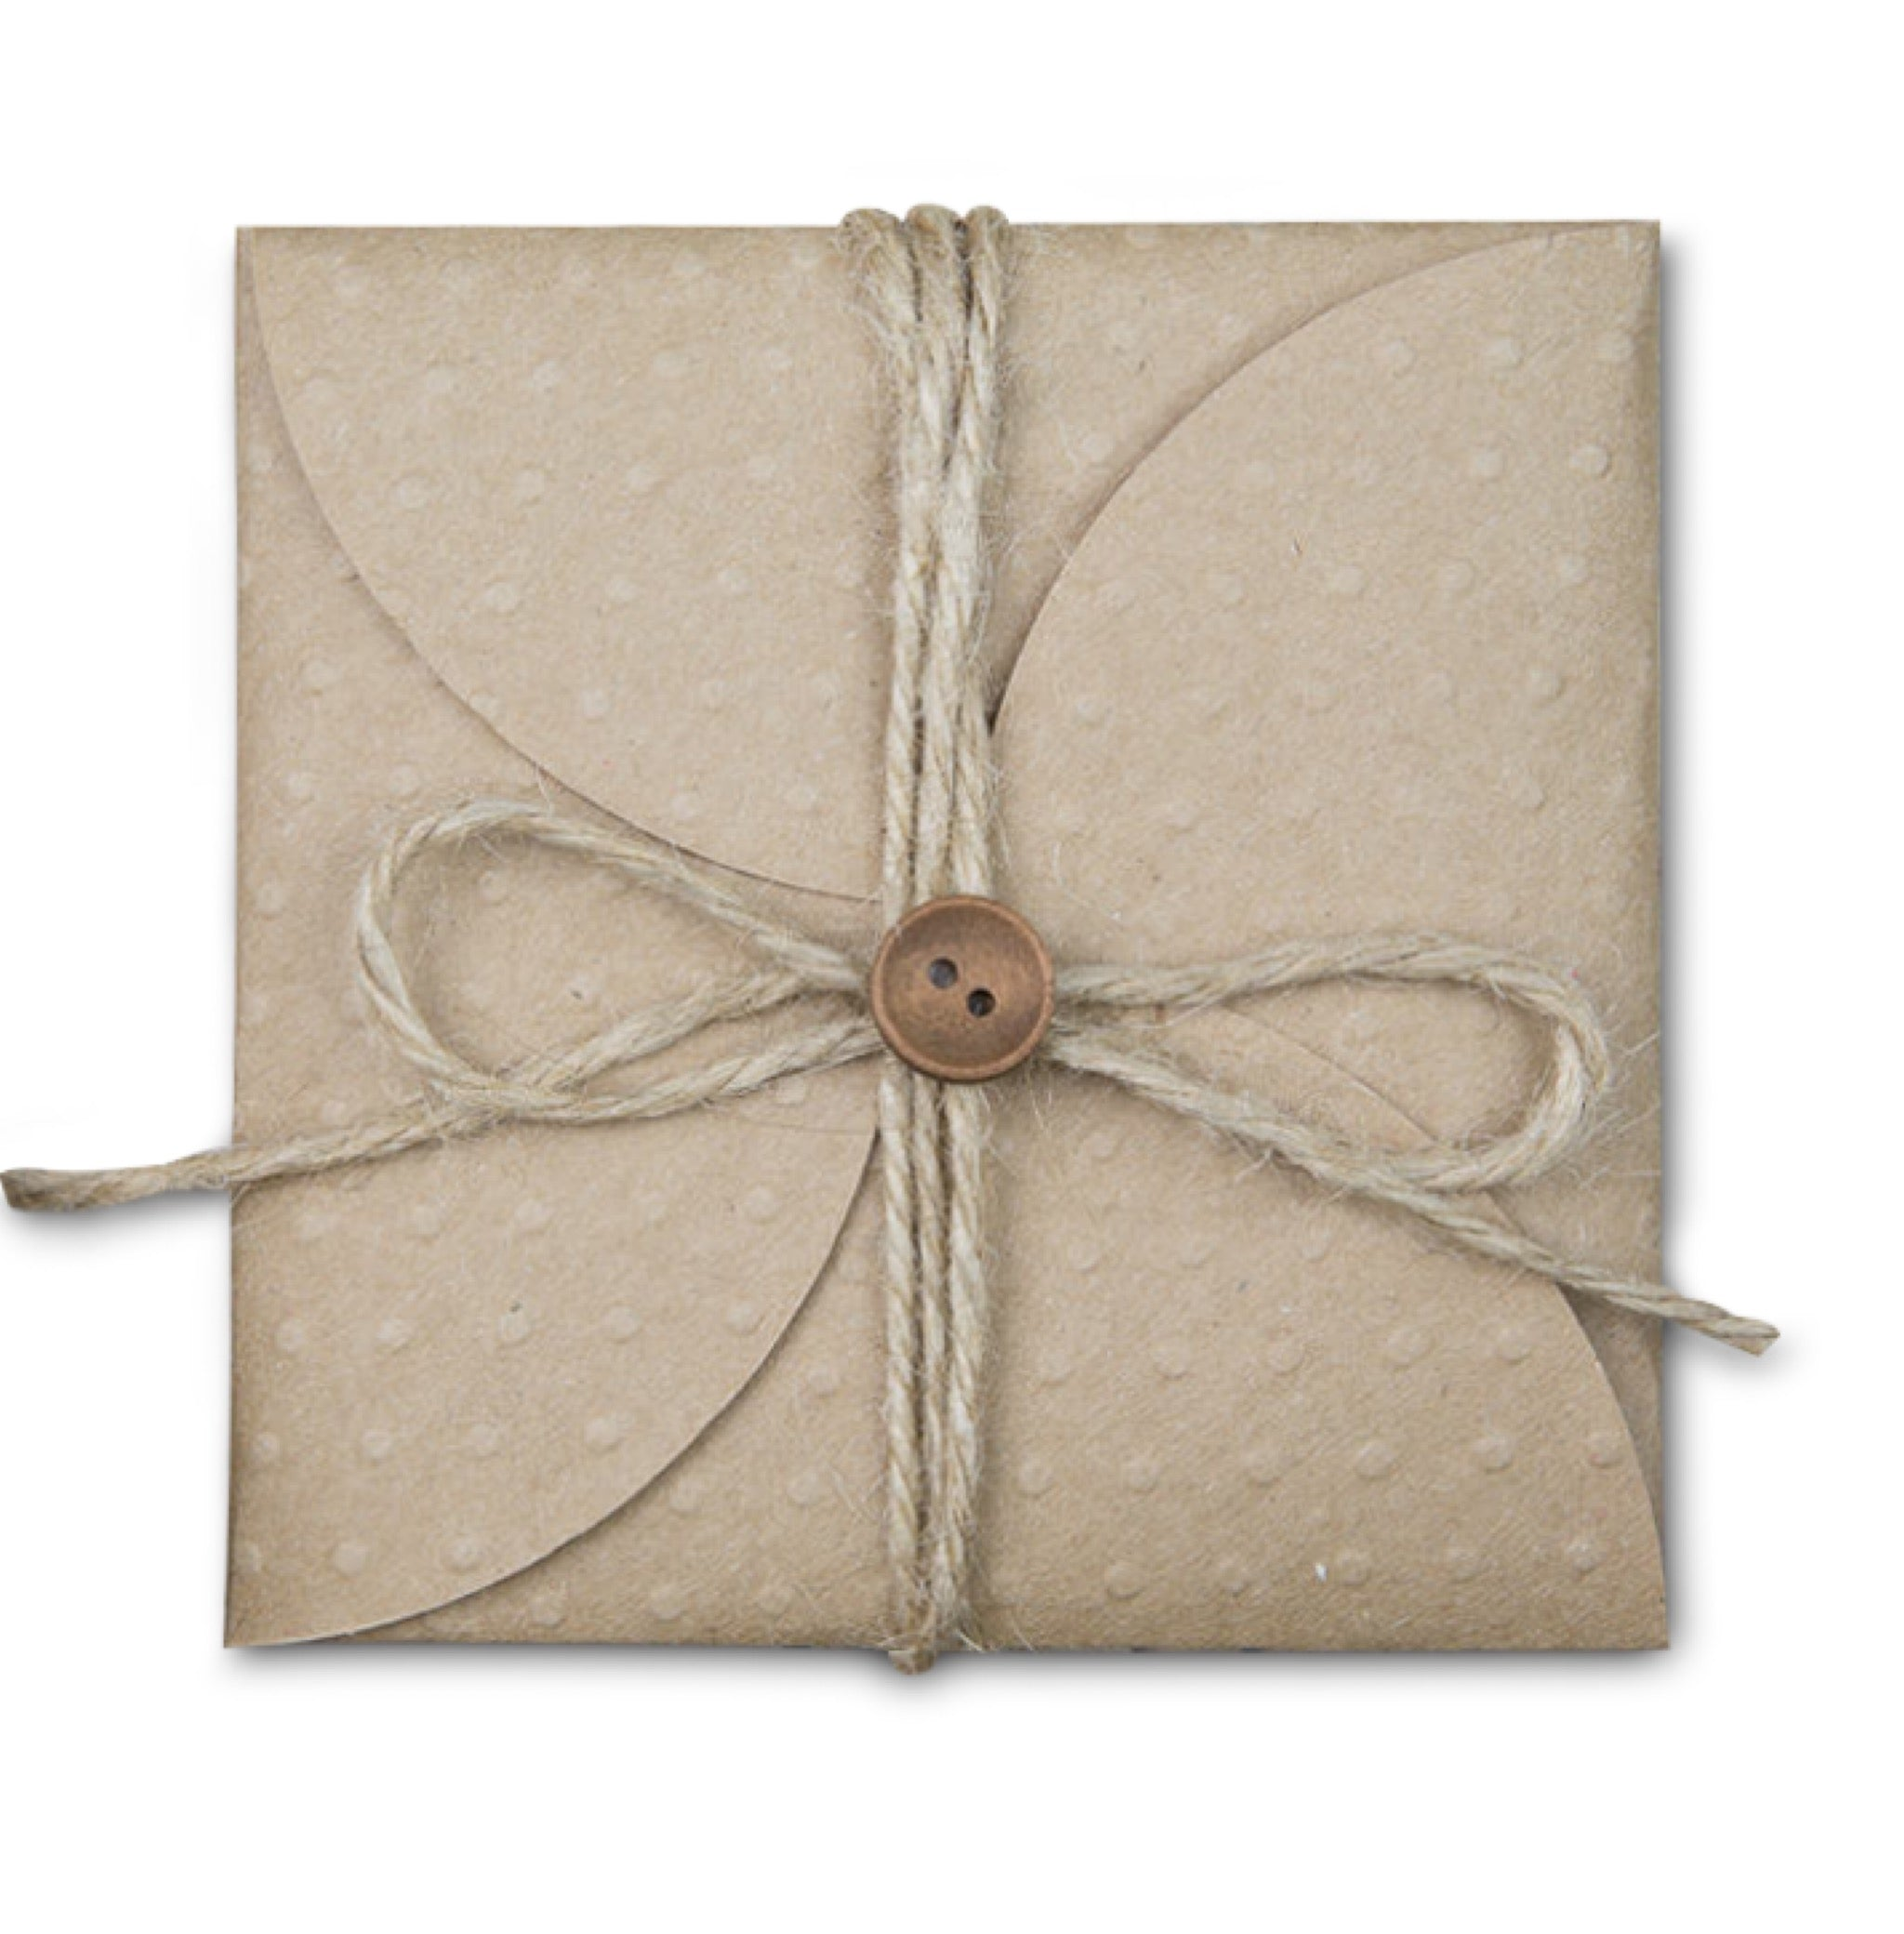 Pack of 5 Handmade Gift Envelopes - Swanky Collection